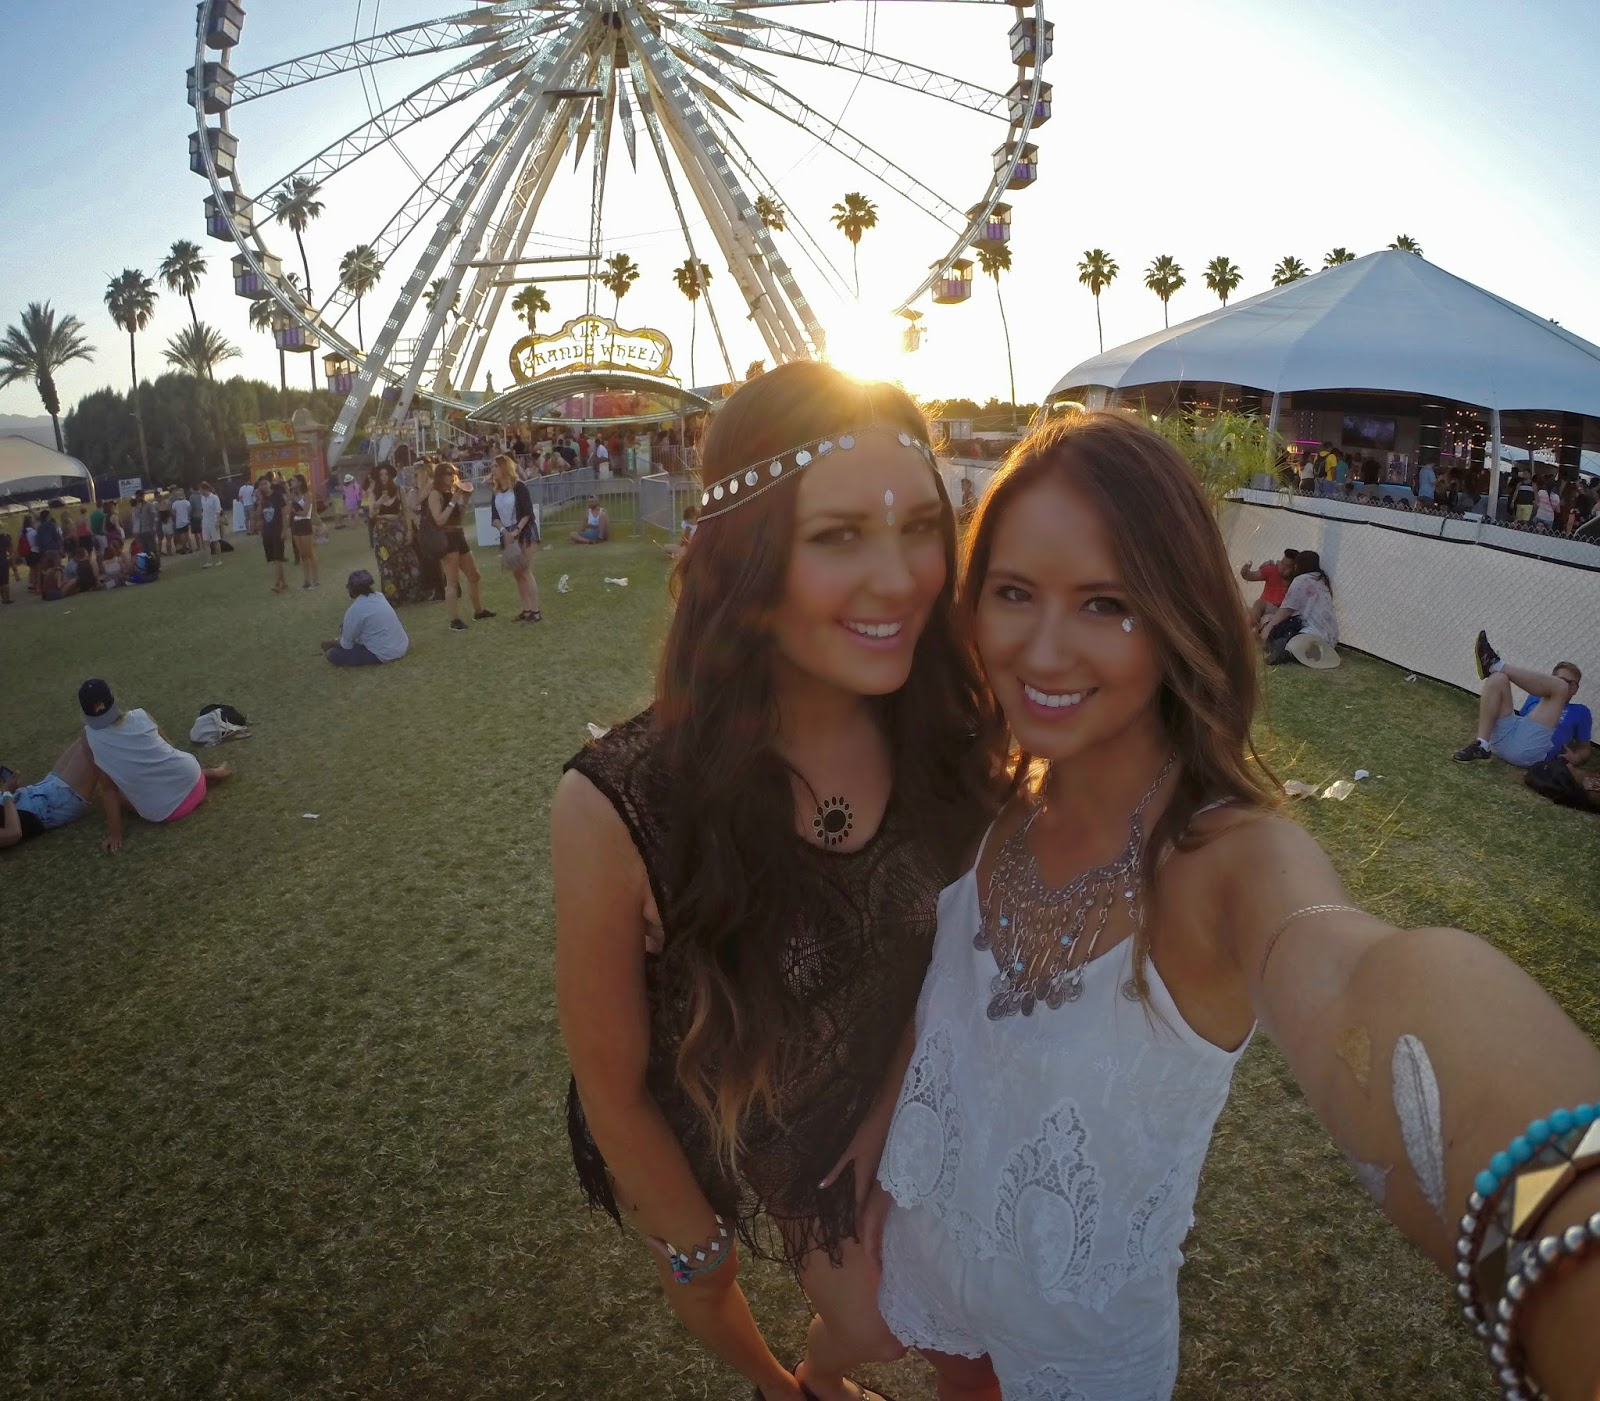 Fashion blogger Mash Elle and Boho Nouveau festival fashion at Coachella - Peace & Love: Coachella Outfits by popular Orlando fashion blogger Mash Elle